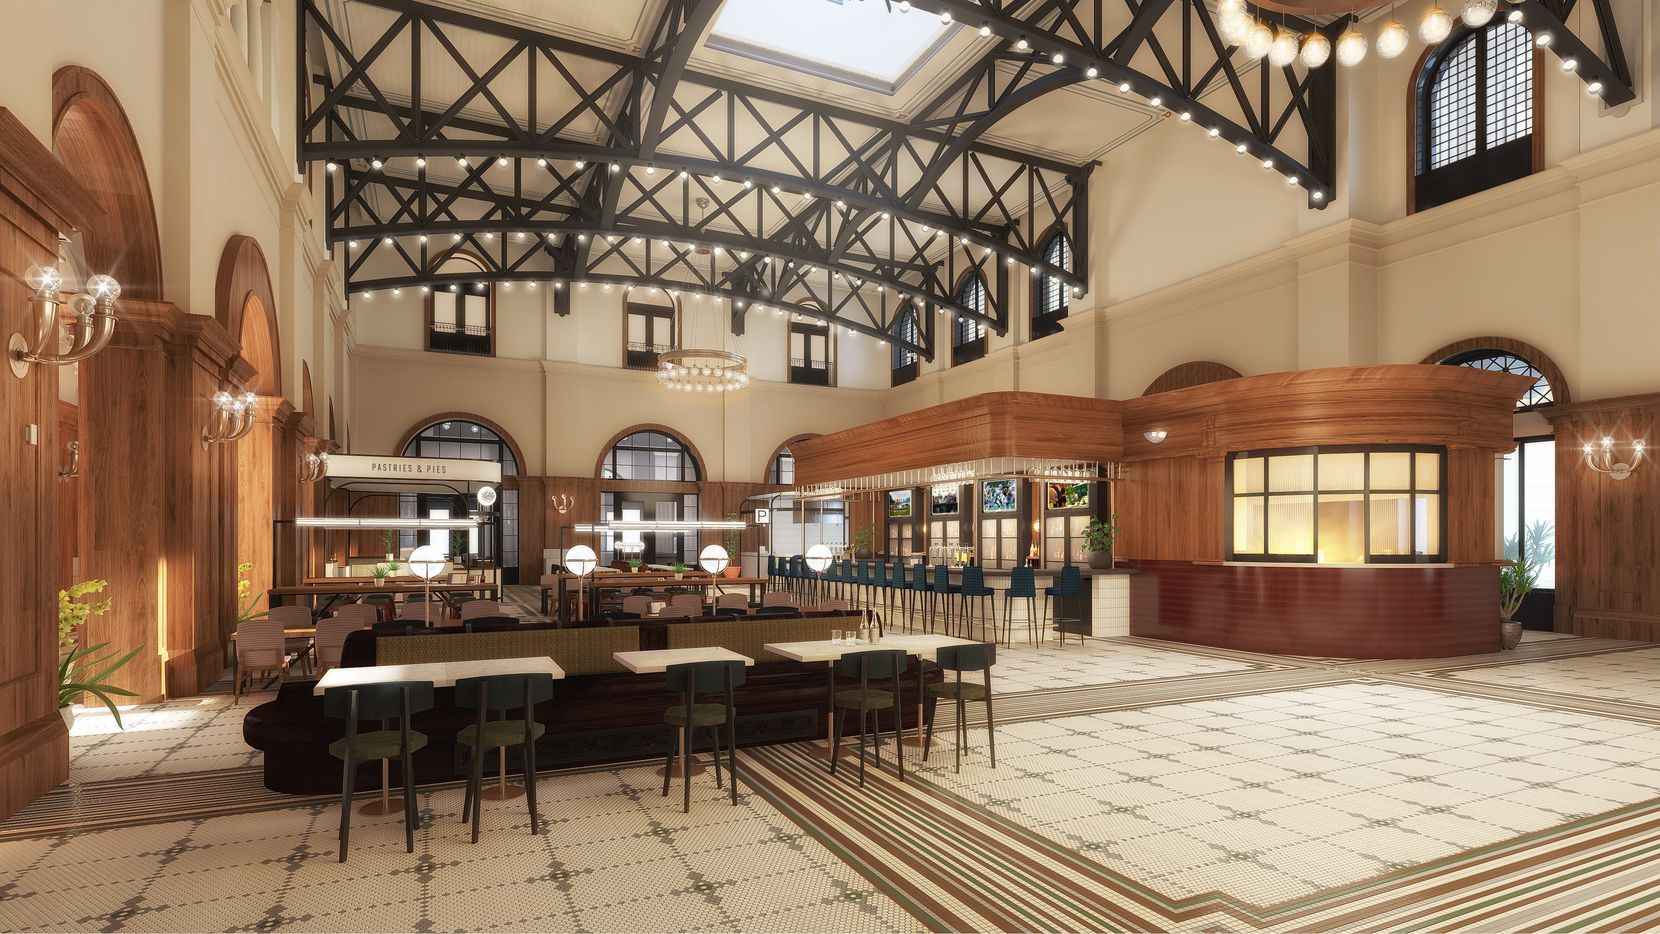 The Hotel Vin's food hall in Grapevine, Harvest Hall, is split into three rooms. They will be part of a grand opening this weekend for the downtown development.